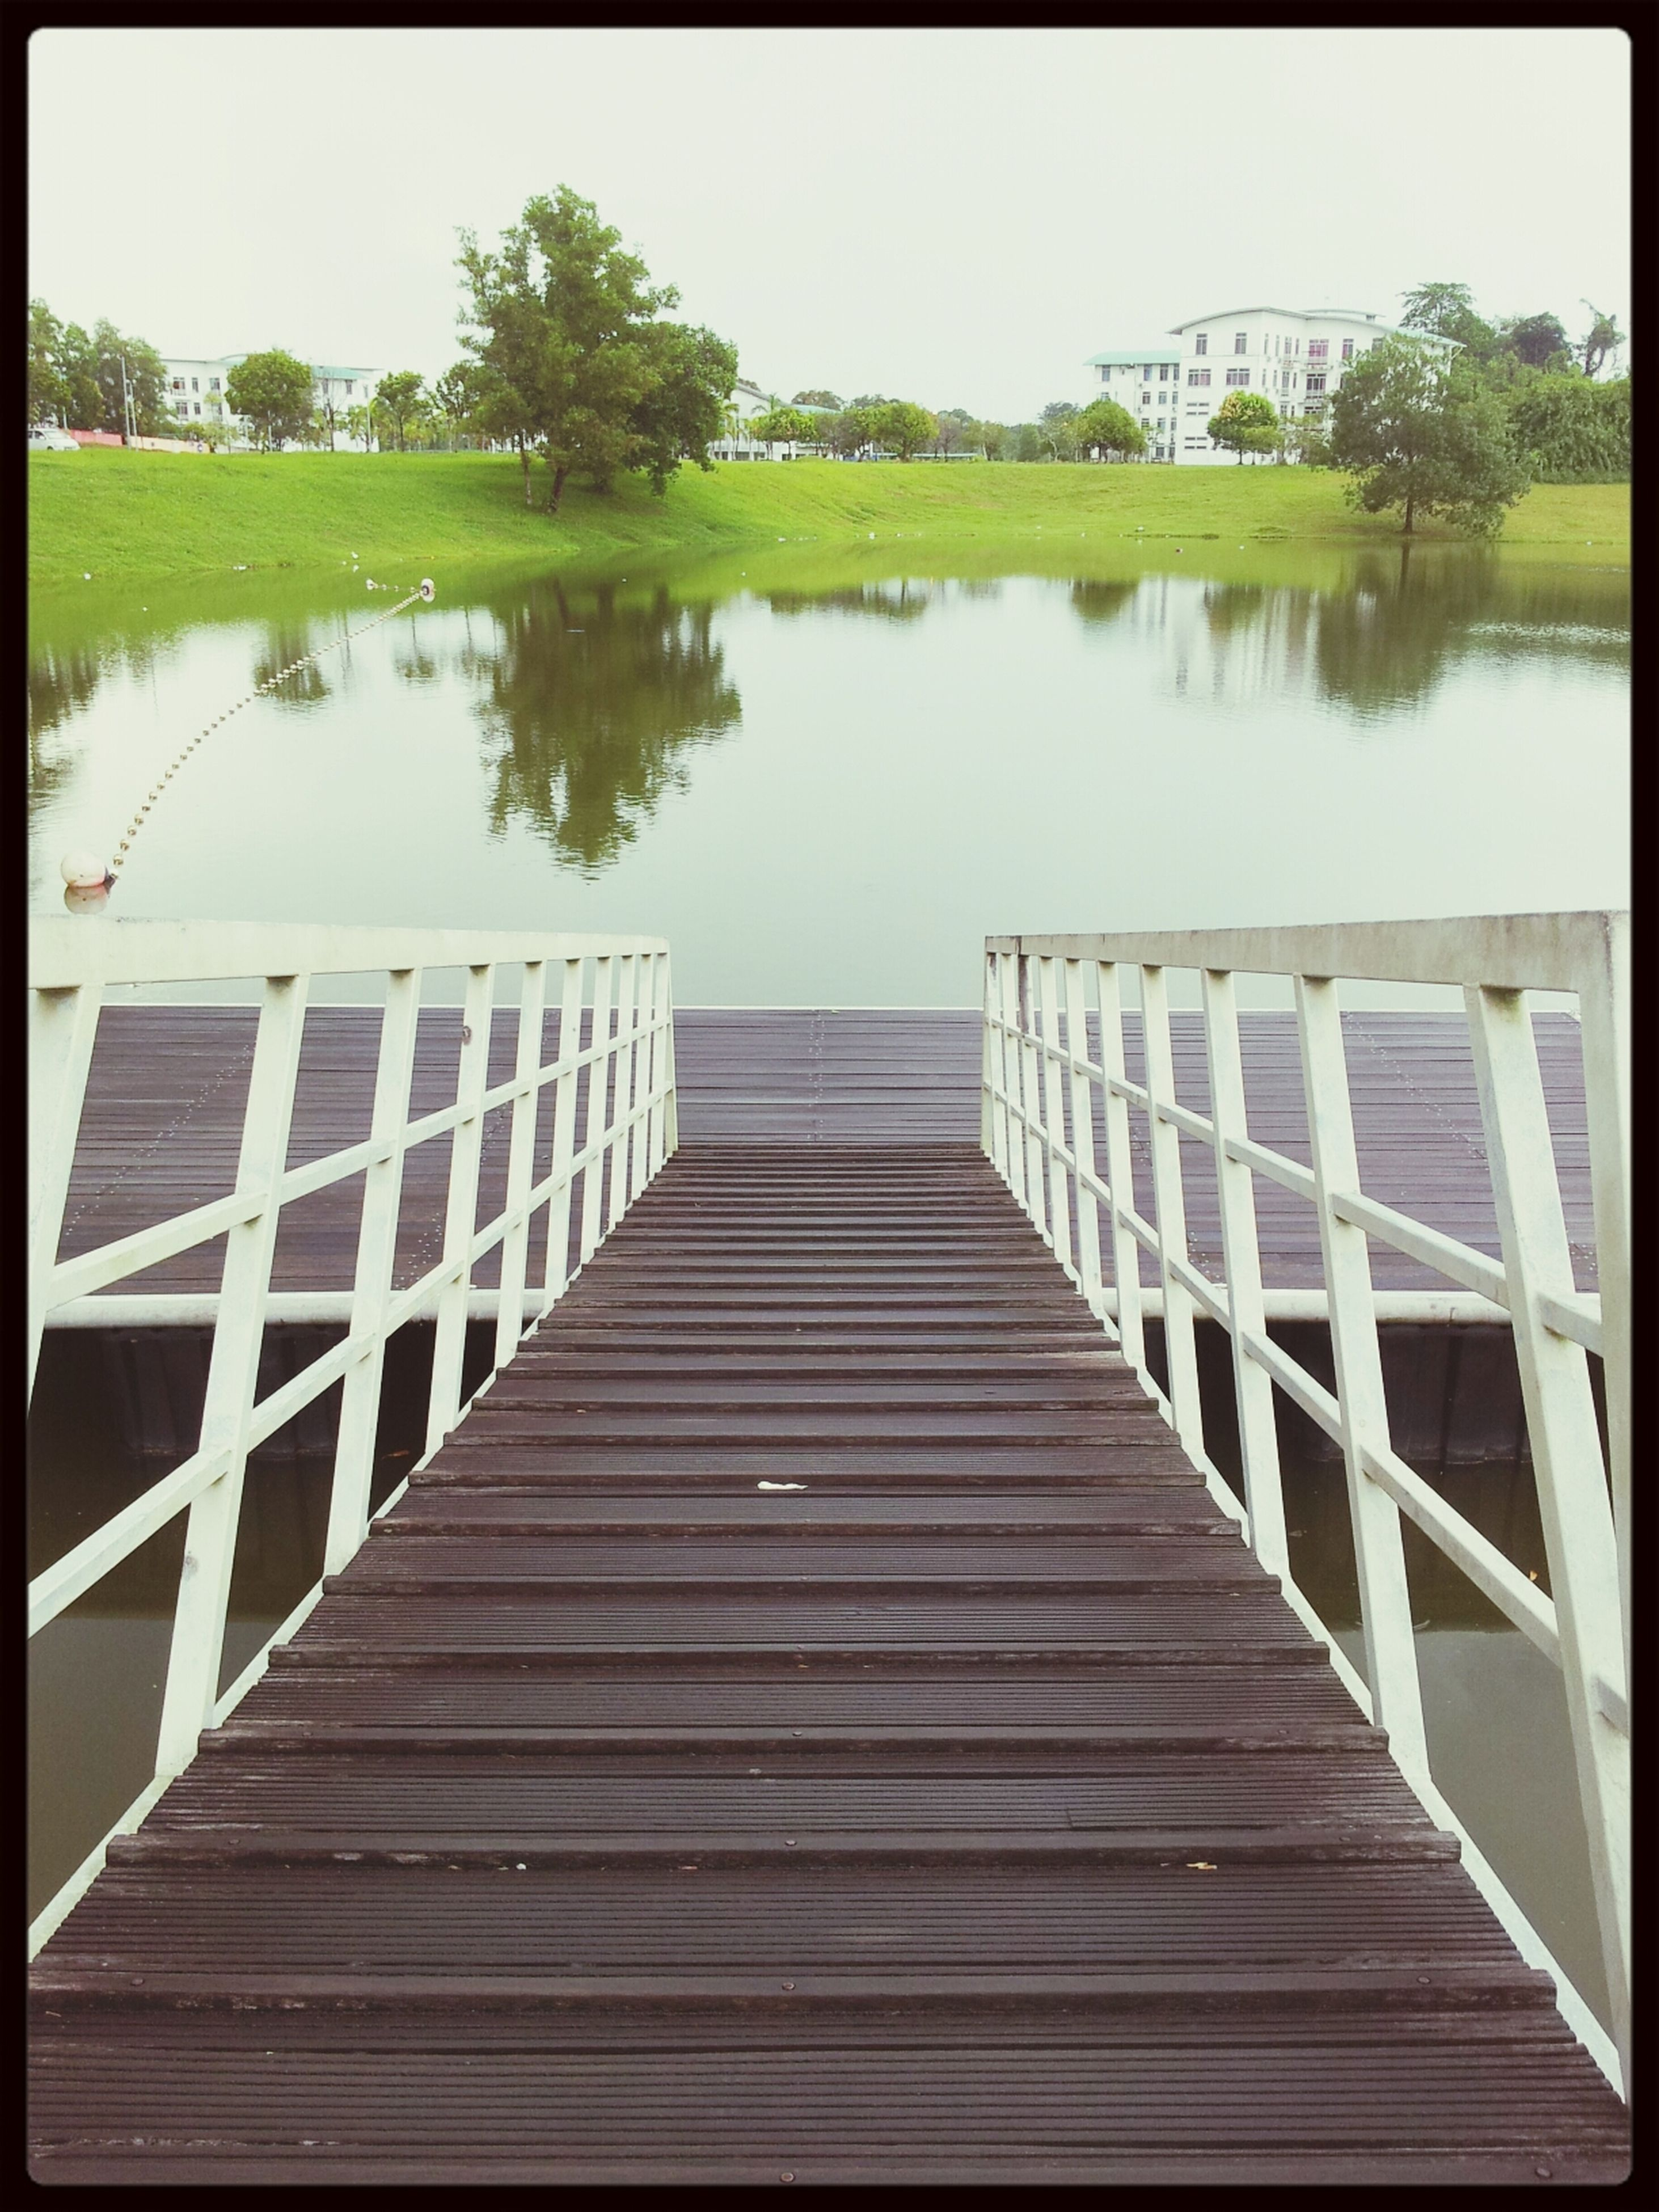 water, lake, transfer print, wood - material, pier, railing, built structure, reflection, wood, auto post production filter, tree, architecture, tranquility, footbridge, river, nature, day, sky, tranquil scene, jetty